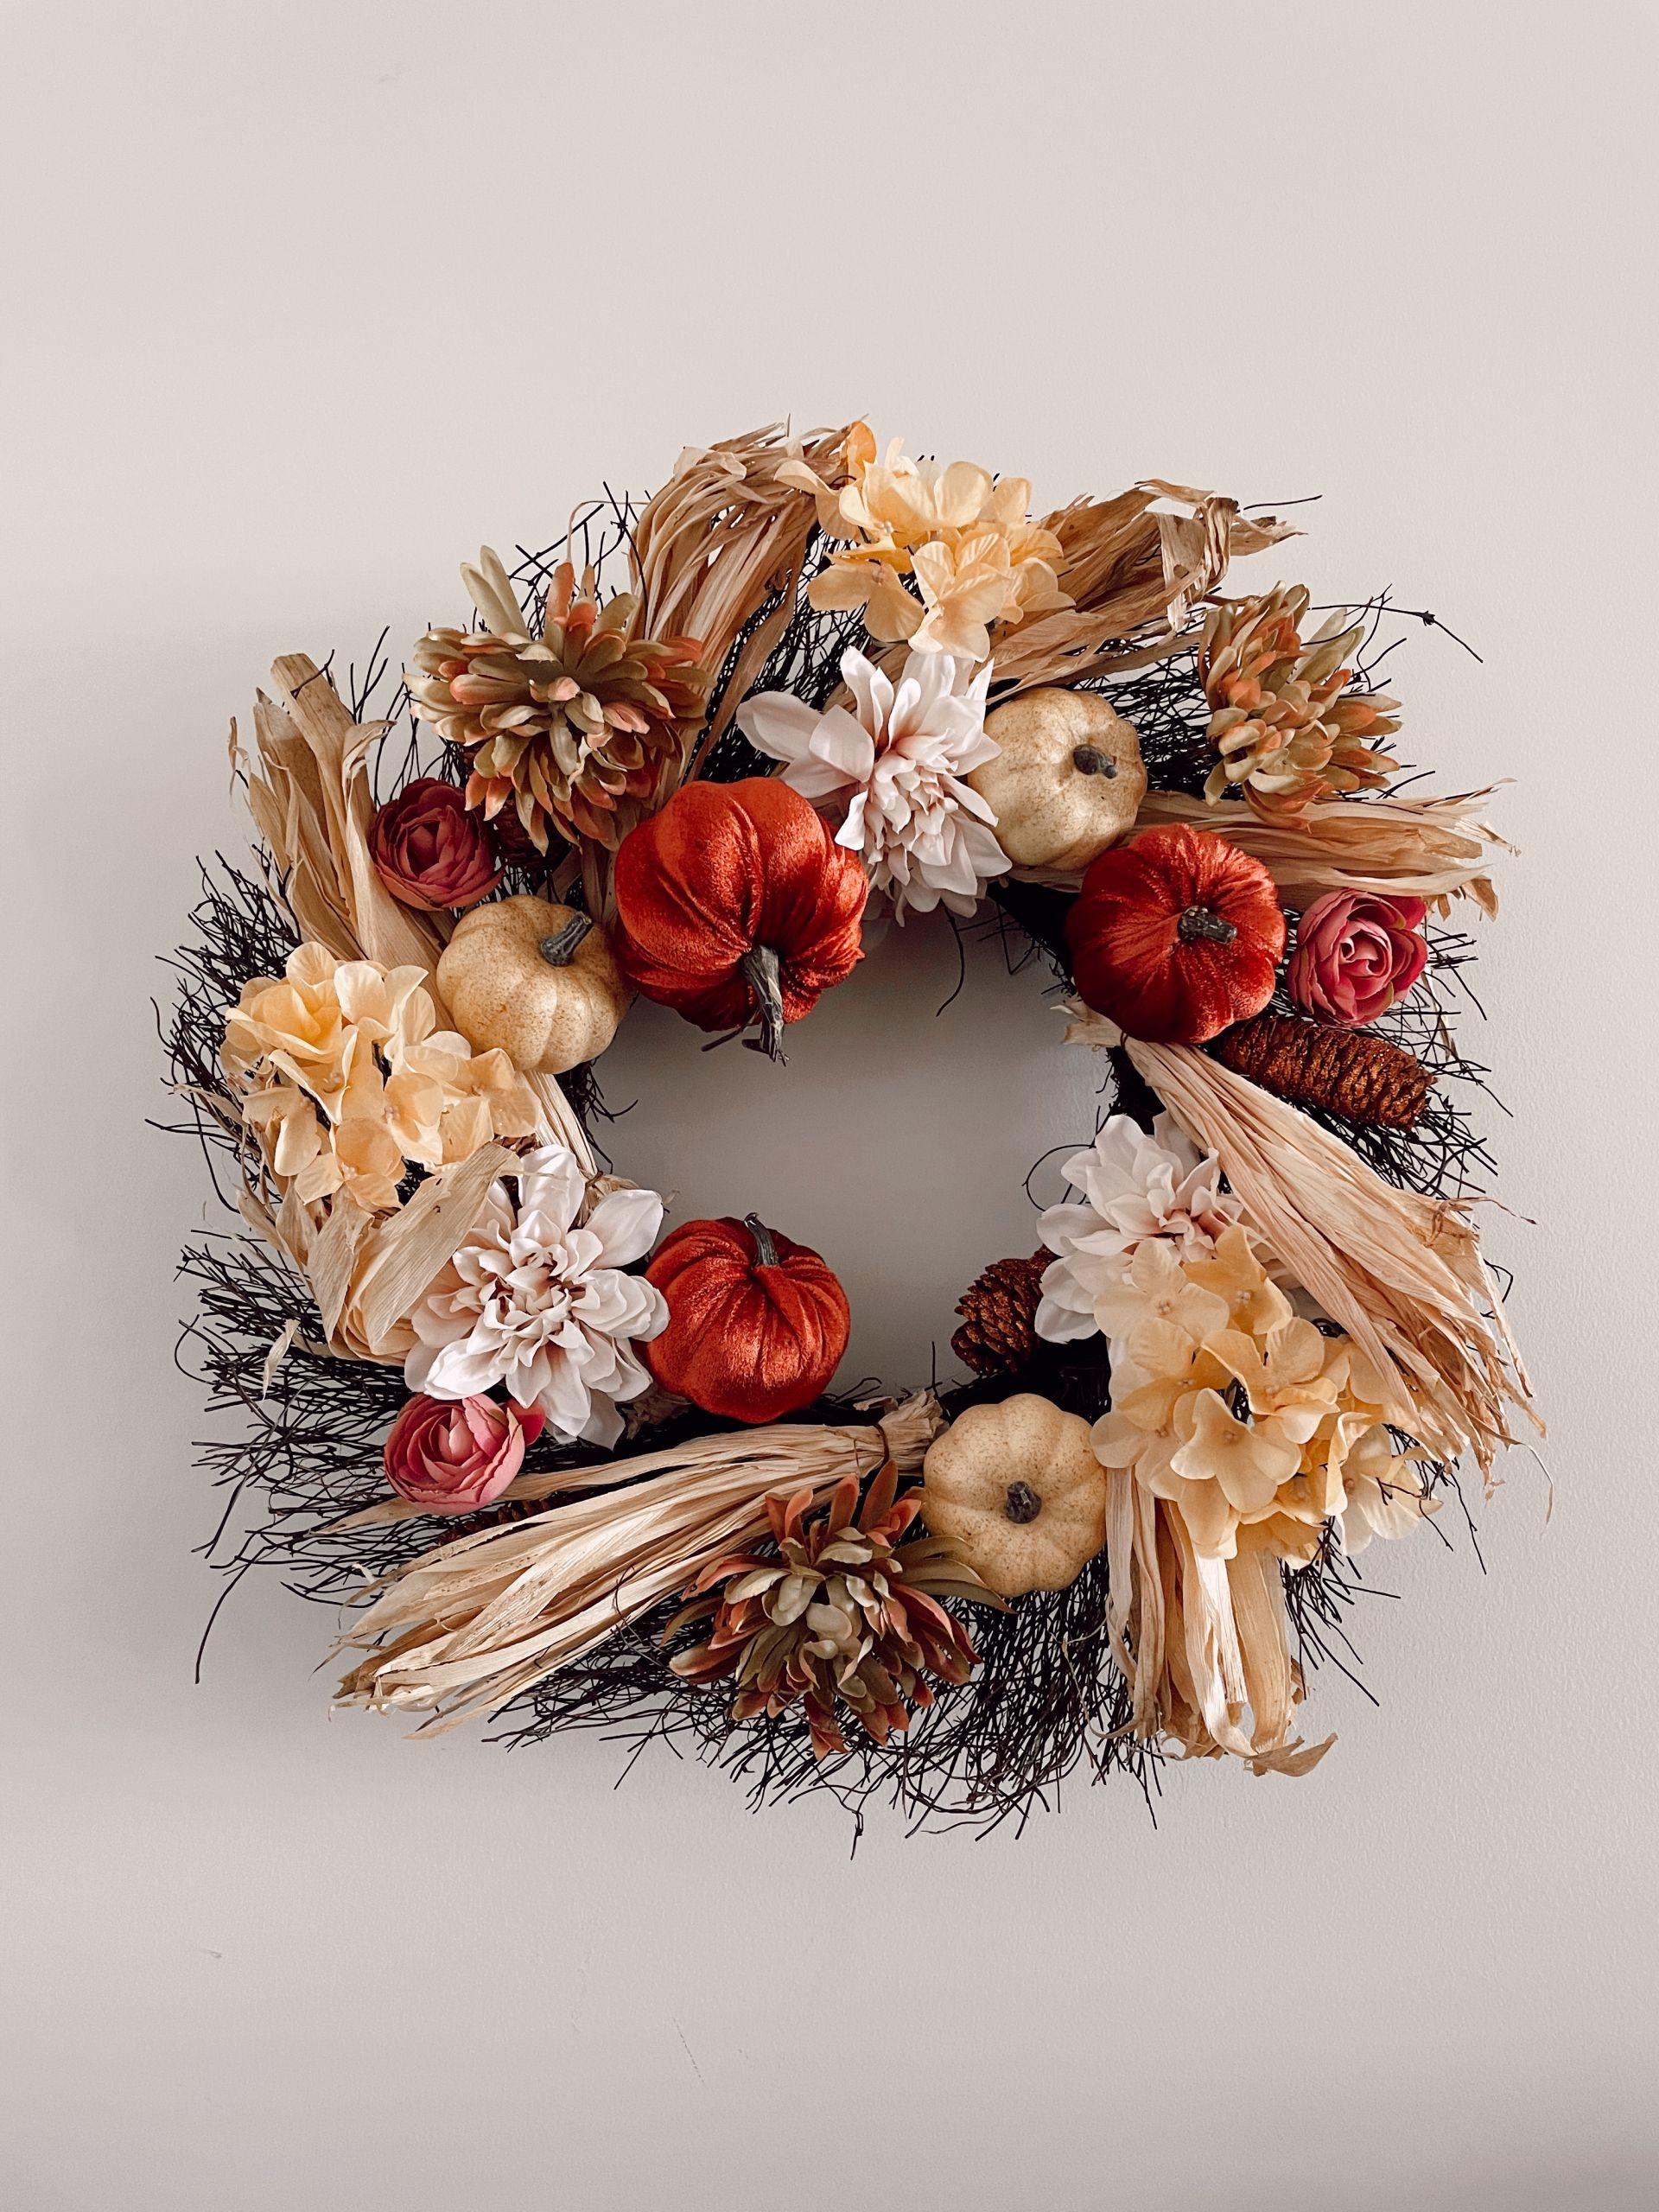 fall wreath, pumpkin wreath, fall home decor, pumpkin wreath ideas, neutral fall wreath, fall home decor, subtle Subtle Touches of Fall to your Home, home decor inspiration, fall home inspiration, black and white fall decor, glam fall decor, neutralfall decor, pretty pumpkindecor, fall decor ideas, pretty fall decor, Red Soles and Red Wine, Jennifer Worman